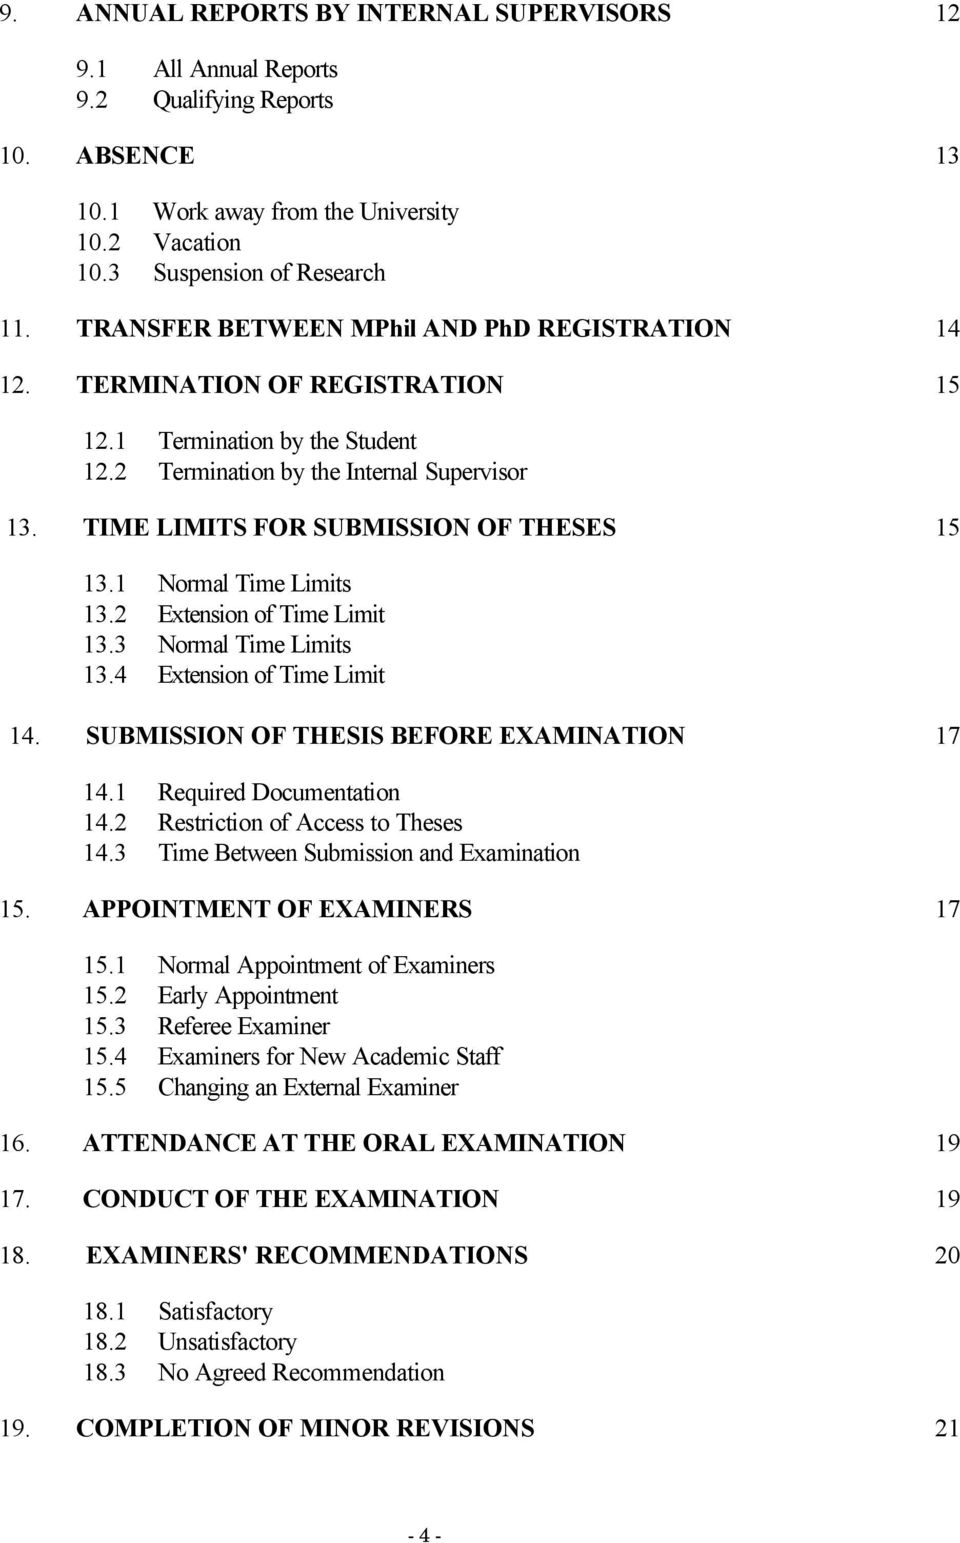 TIME LIMITS FOR SUBMISSION OF THESES 15 13.1 Normal Time Limits 13.2 Extension of Time Limit 13.3 Normal Time Limits 13.4 Extension of Time Limit 14. SUBMISSION OF THESIS BEFORE EXAMINATION 17 14.